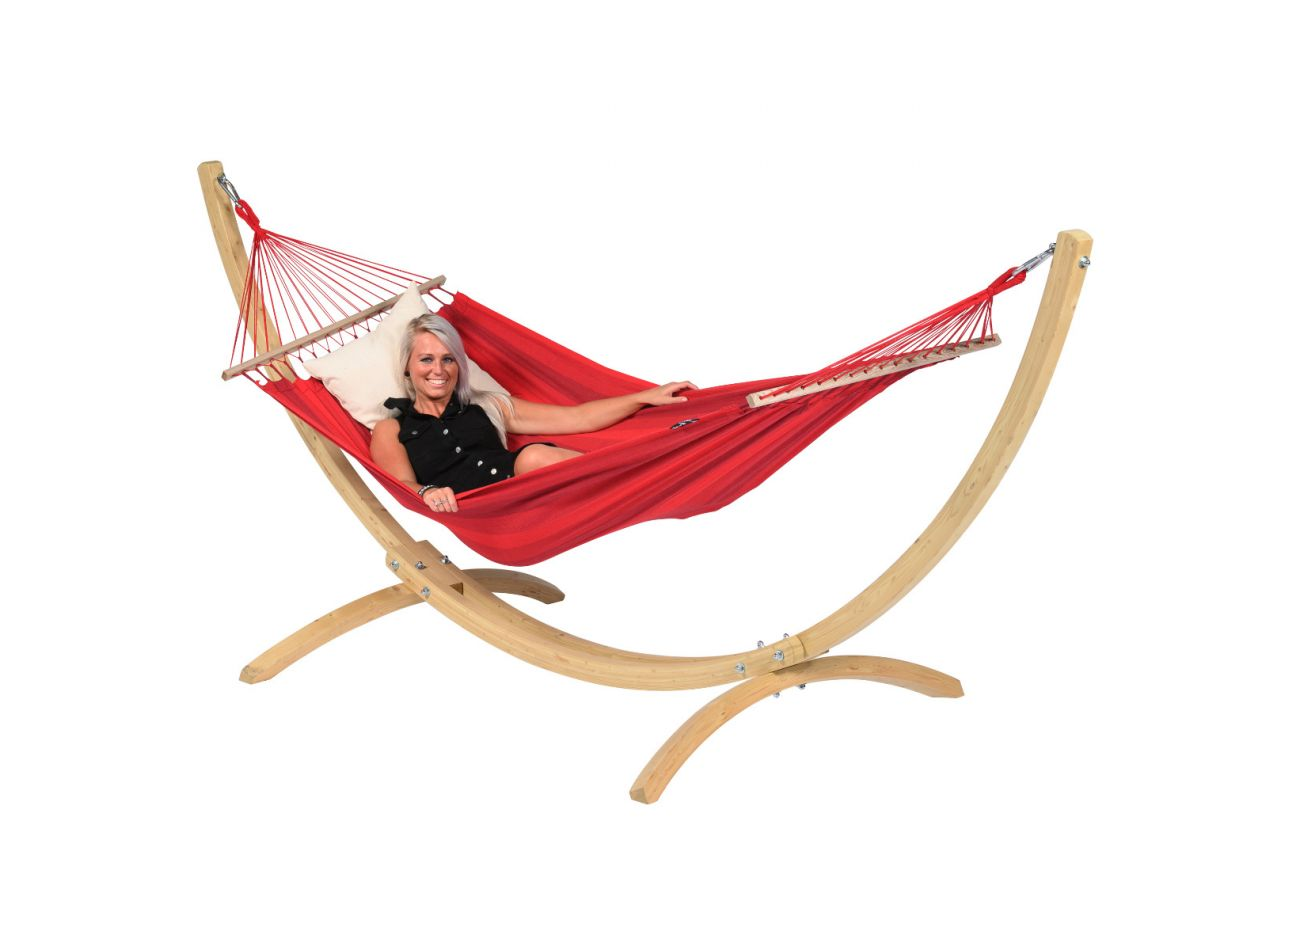 Hængekøje med Stativ til 1 person Wood & Relax Red